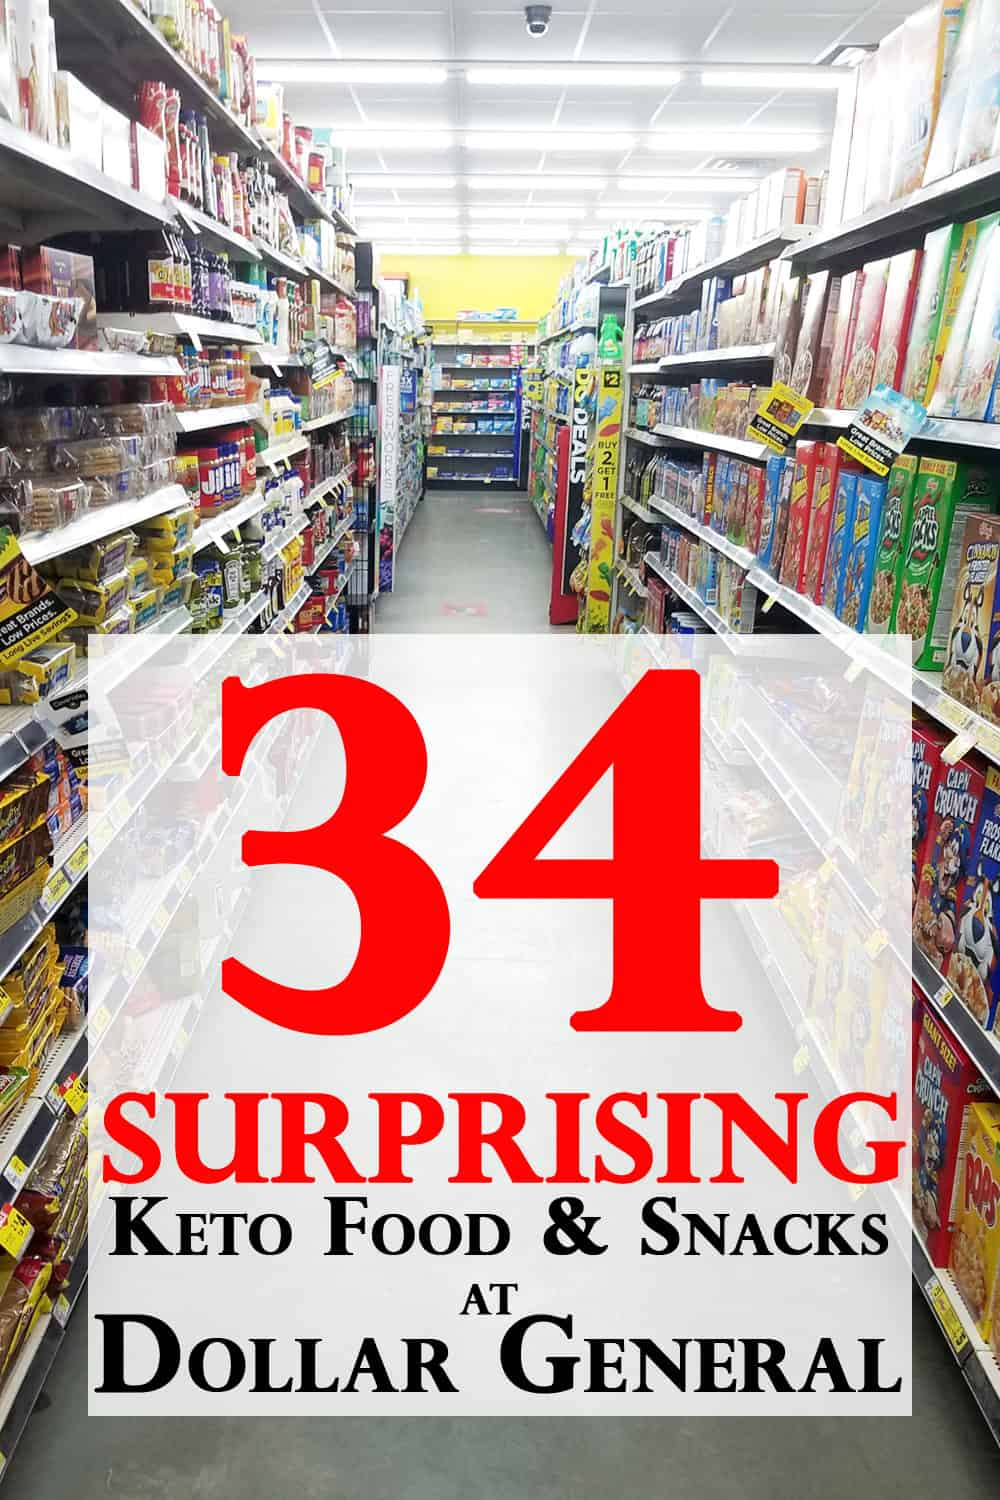 You will be shocked how many Keto Foods and Keto Snacks you can find in a Dollar General Store! I visited this small town Dollar General with my camera in hand.  Check it out if your trying to eat Budget Keto or following a Keto Diet in a town without a real grocery store.  #KetoDiet @AdvantagMeals